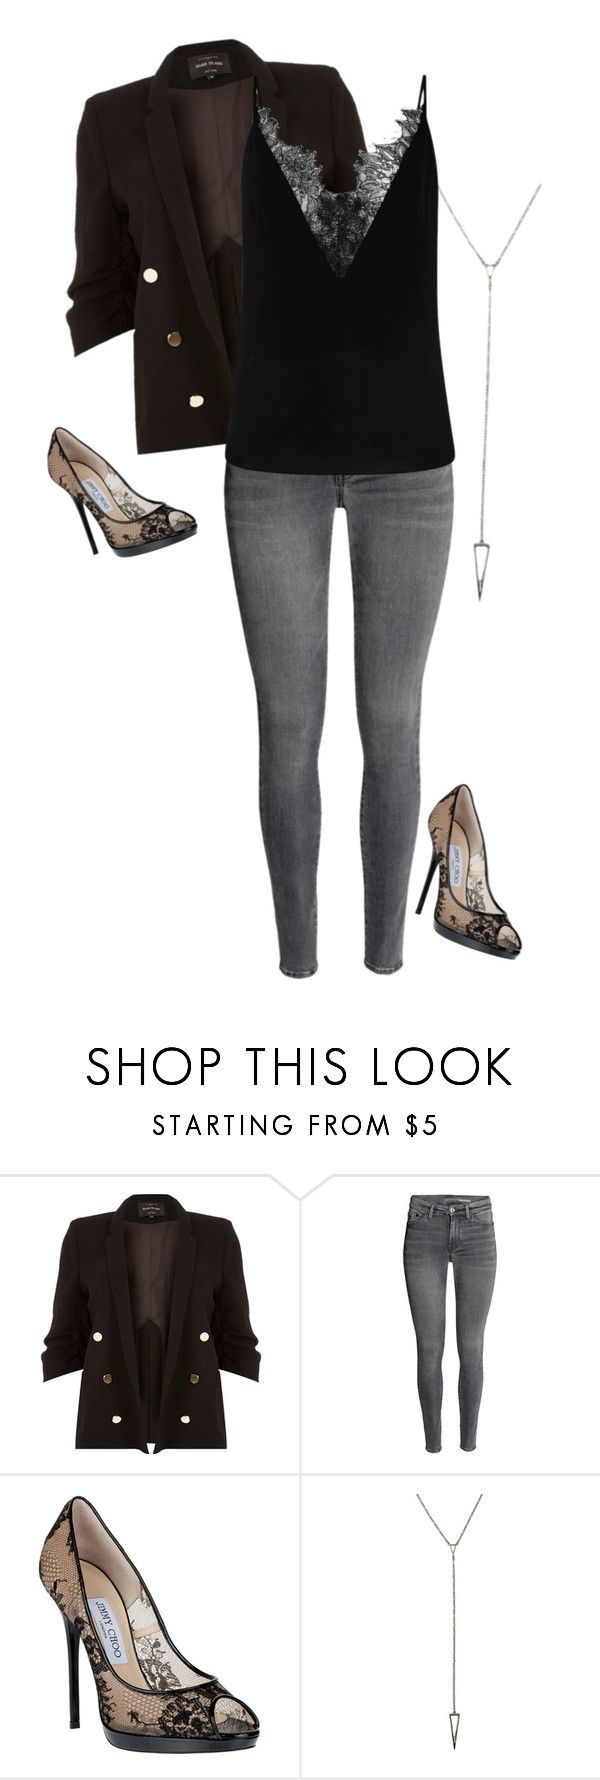 """""""Valencia Perez 1.2 {Crazy Ex-Girlfriend}"""" by sarah-natalie ❤ liked on Polyvore featuring River Island, Jimmy Choo, cw, crazyexgirlfriend, ValenciaPerez and plus size clothing"""